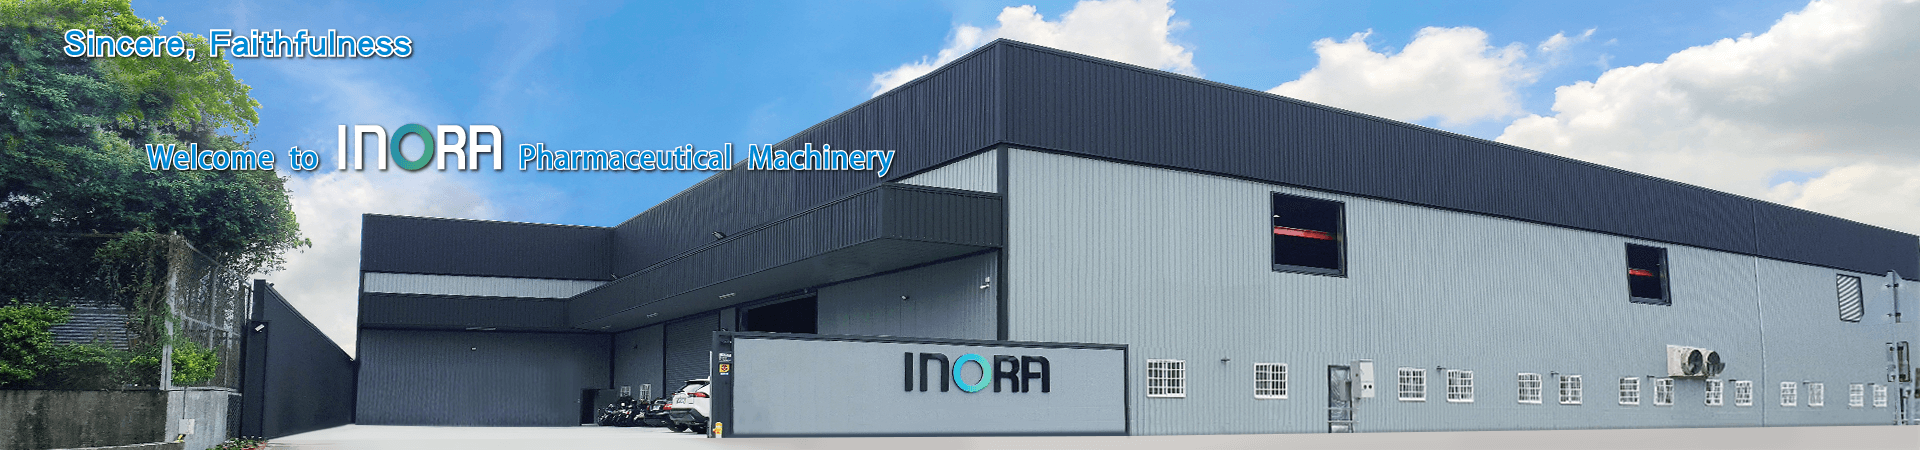 Pharmaceutical equipment,Granulator,Spray dryer,Vacuum freeze dryer,Roller compactor,Inora Pharmaceutical Machinery Co.,Ltd.